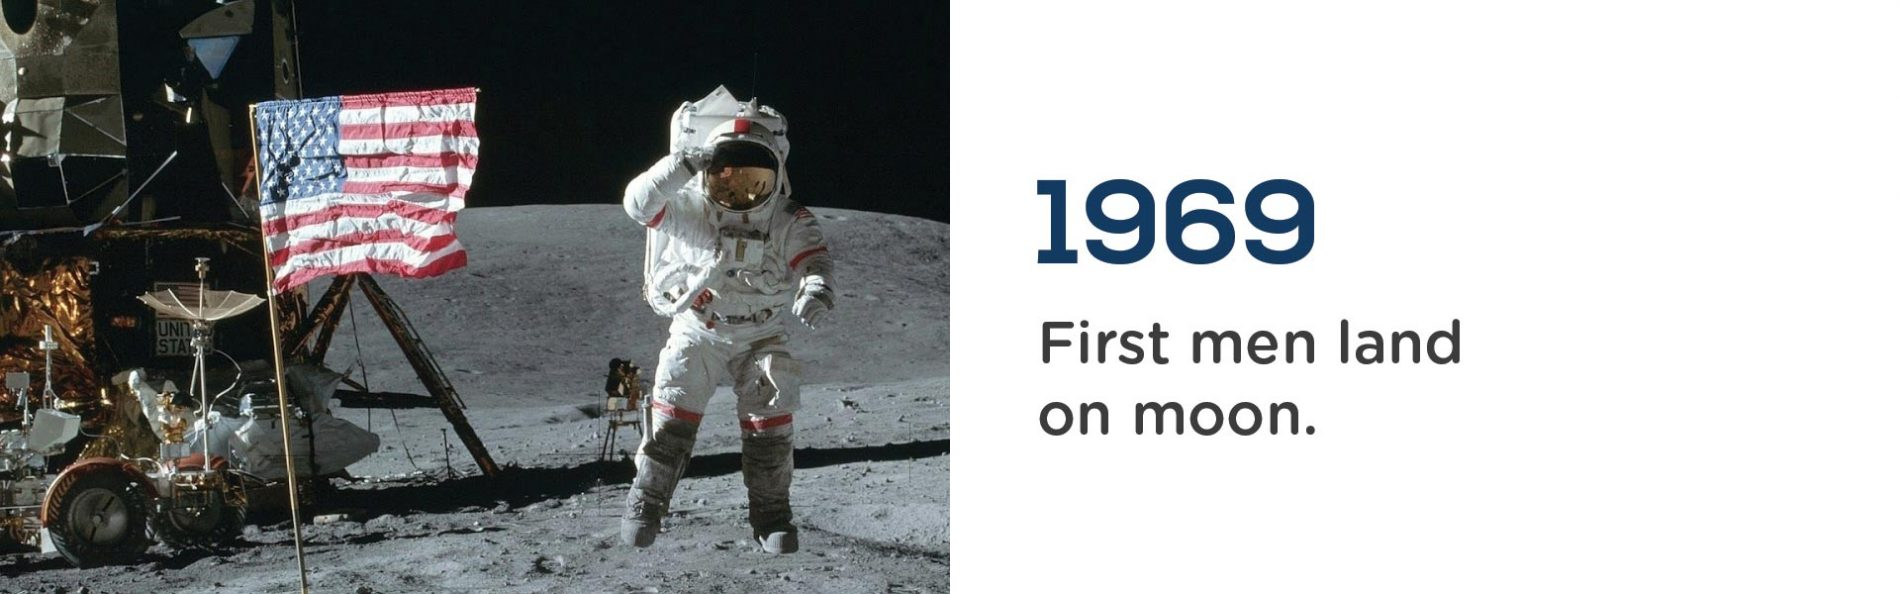 Neil Armstong became the first man to land on the moon in 1969.Wrigley Claydon Solicitors, Trusted for 200 years